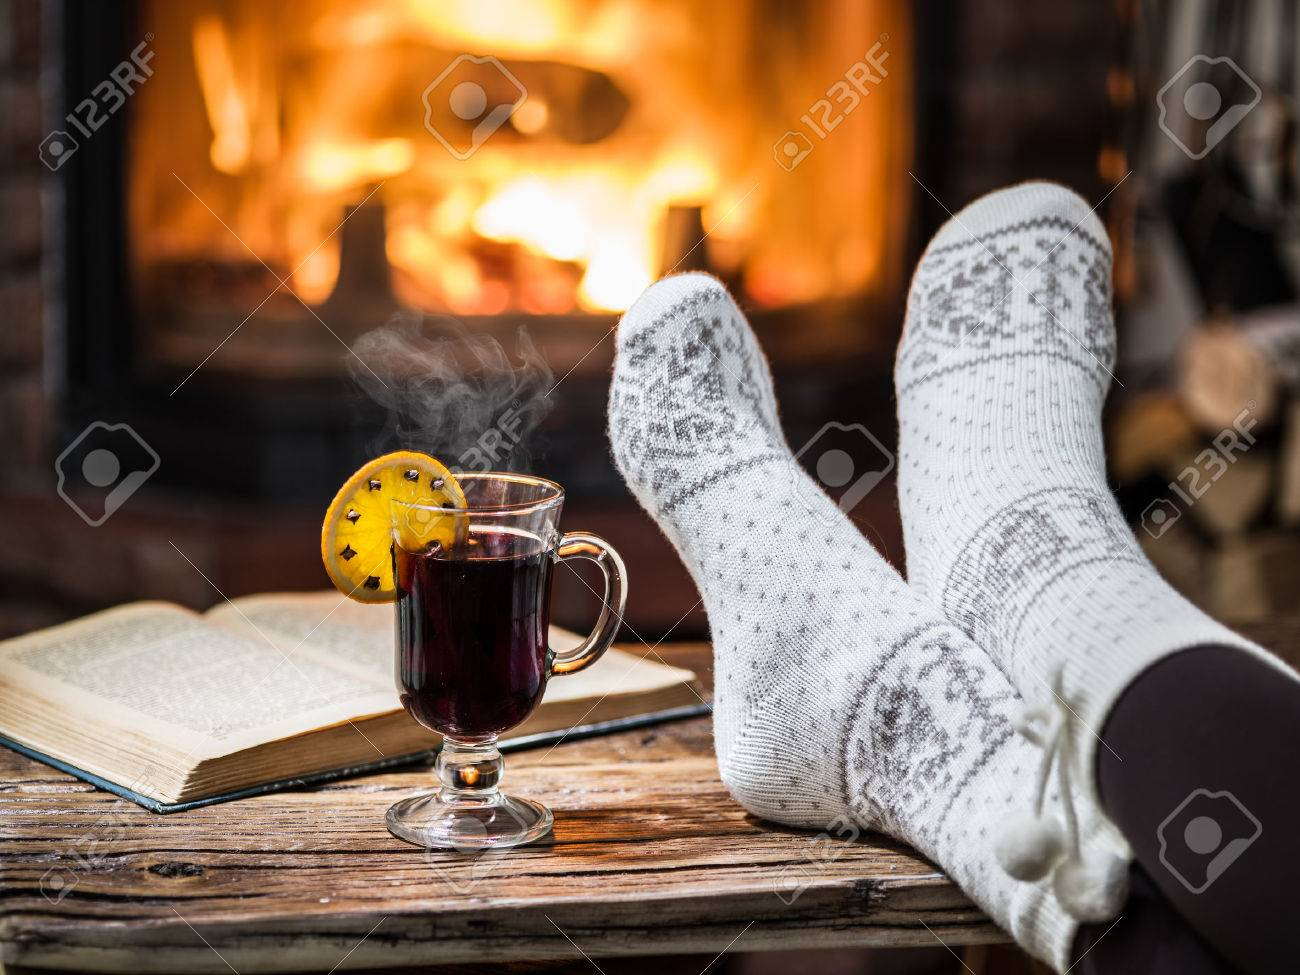 Warming and relaxing near fireplace. Woman feet near the cup of hot wine in front of fire. Standard-Bild - 63146140